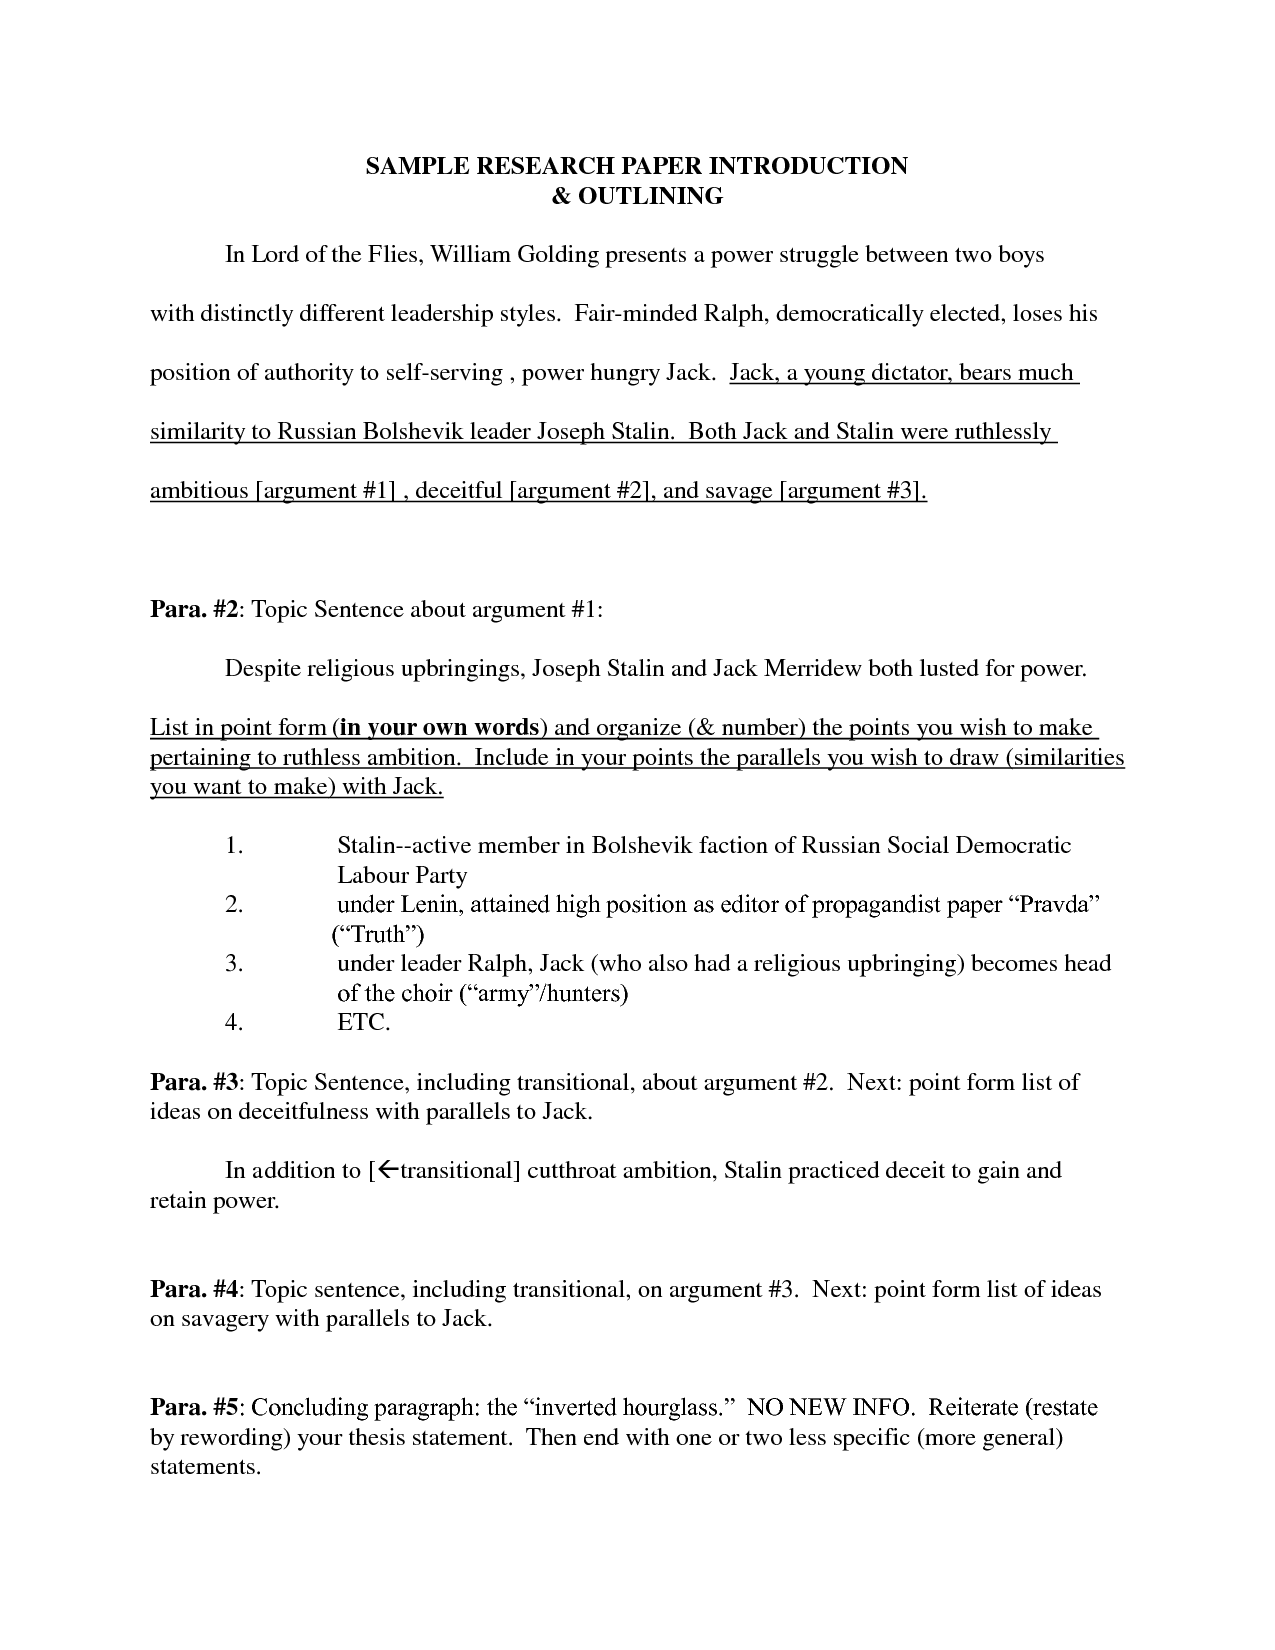 005 Writing An Introduction To Research Paper Top A The Scientific Middle School Paragraph For Full